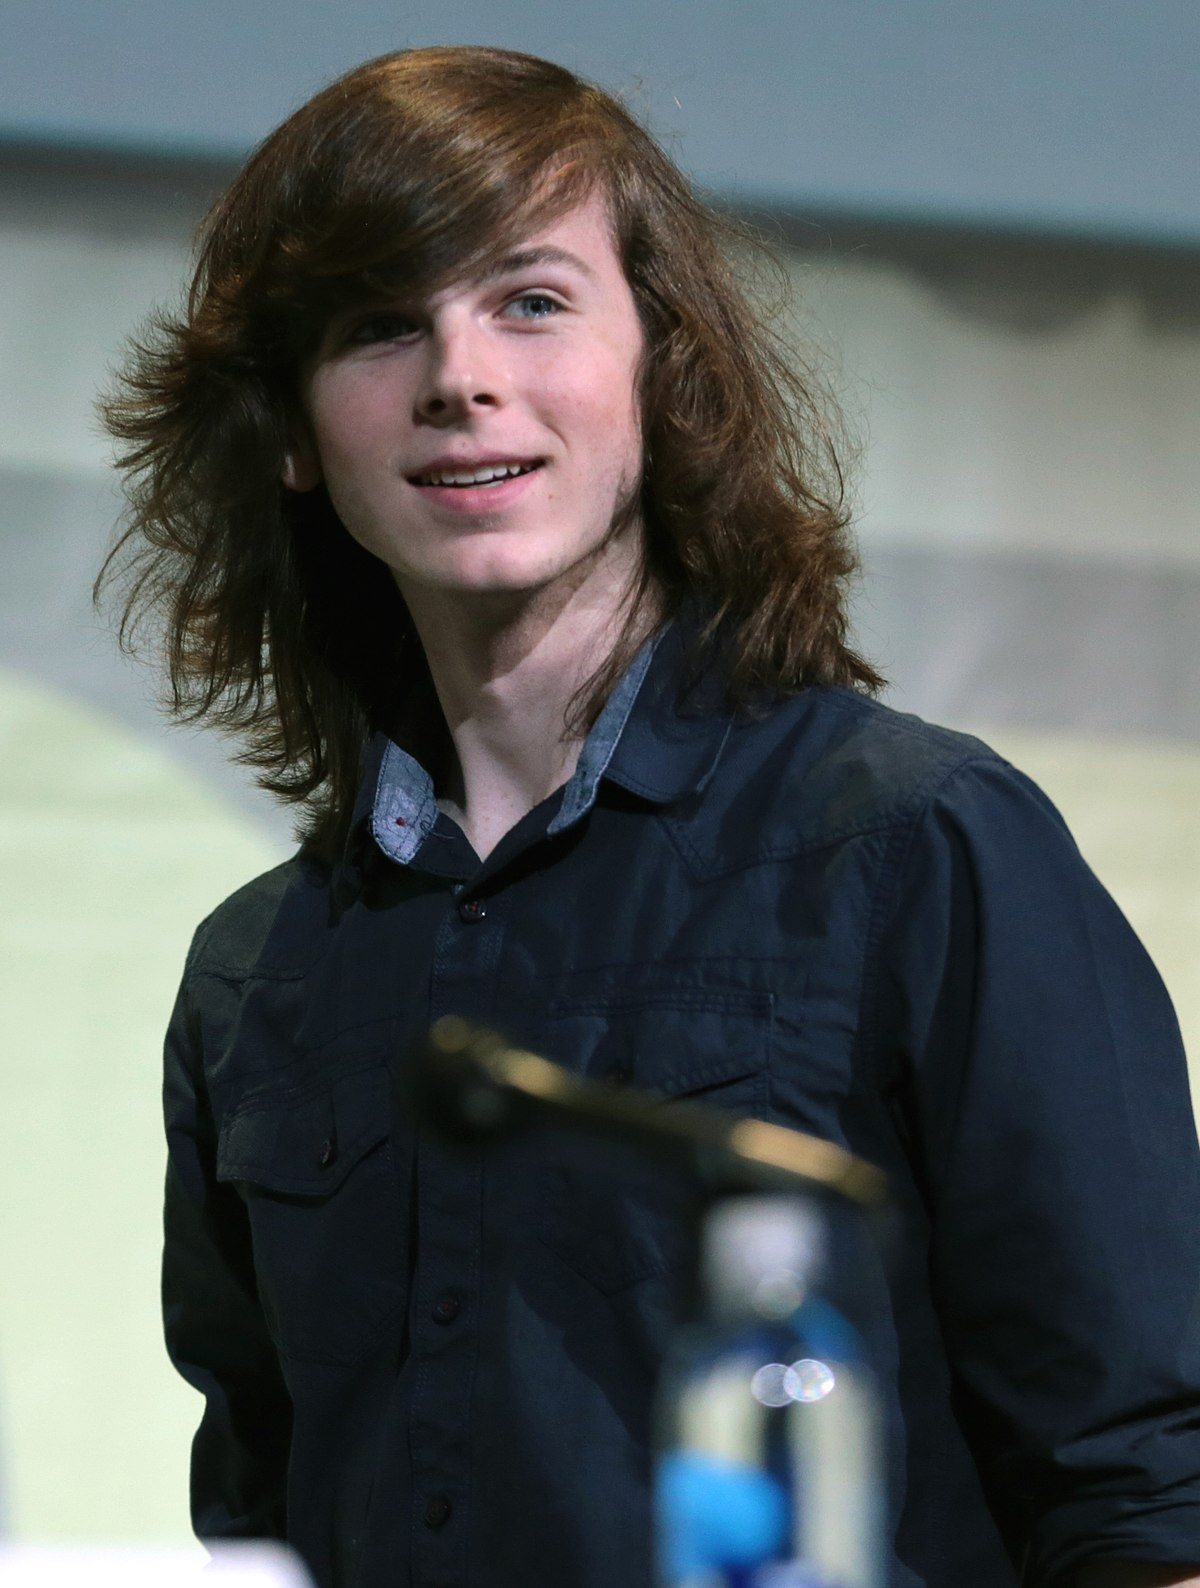 chandler riggs 2017chandler riggs instagram, chandler riggs height, chandler riggs 2017, chandler riggs 2016, chandler riggs vk, chandler riggs and andrew lincoln, chandler riggs snapchat, chandler riggs ask, chandler riggs age, chandler riggs stream, chandler riggs steam, chandler riggs youtube channel, chandler riggs norman reedus, chandler riggs and katelyn nacon, chandler riggs boyu, chandler riggs stunt double, chandler riggs haircut, chandler riggs youtube, chandler riggs carl poppa, chandler riggs league of legends